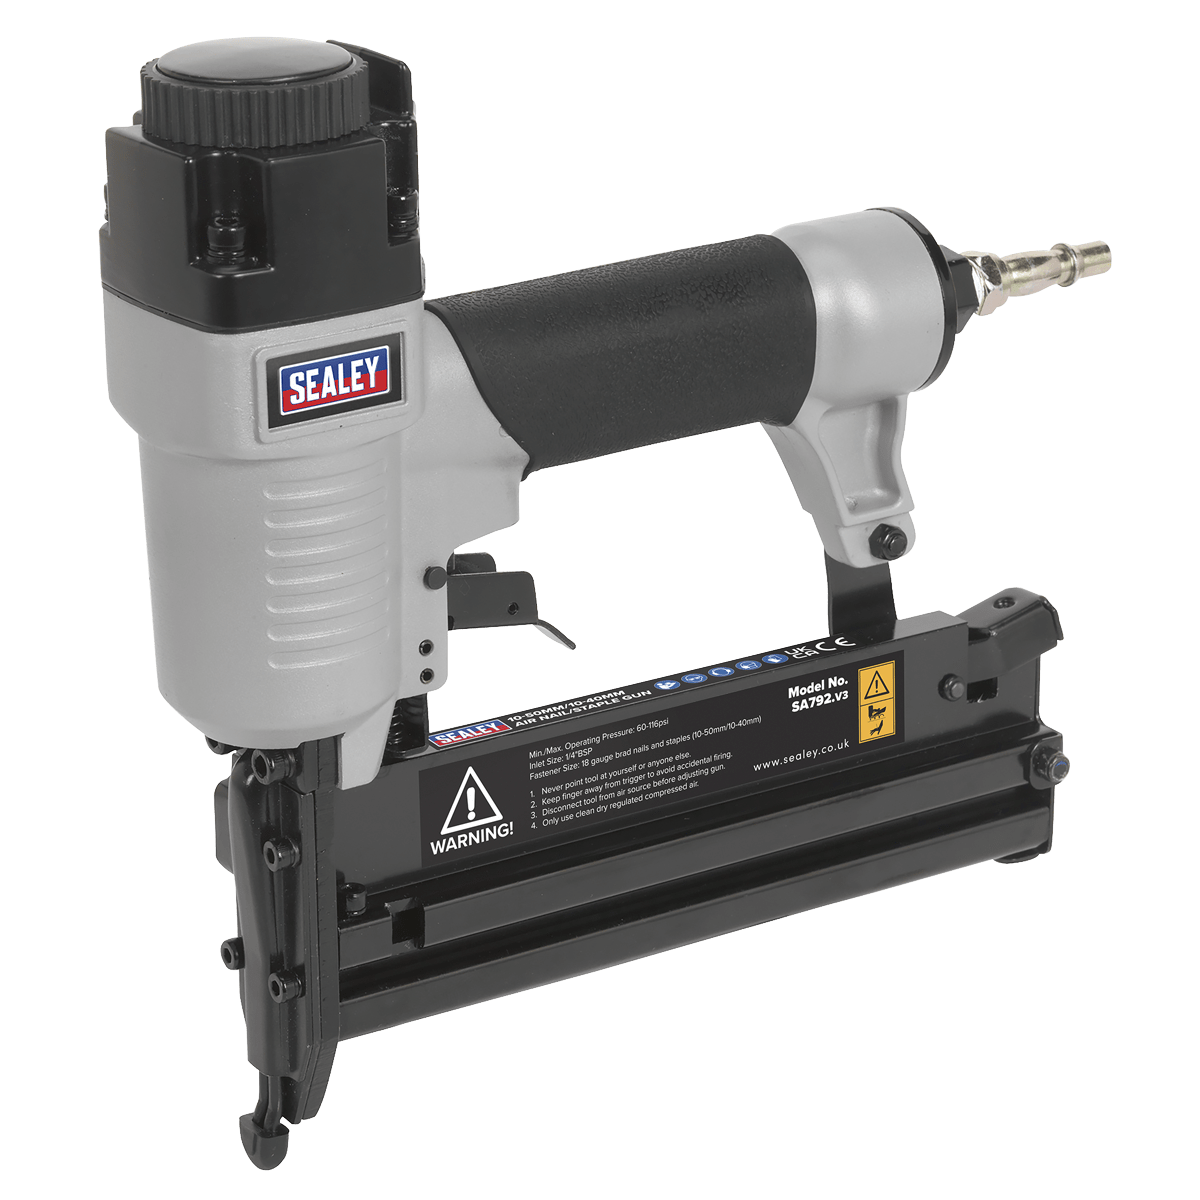 Sealey Air Nail/Staple Gun 10-50mm/10-40mm Capacity SA792   Professional air nailer/stapler with lightweight aluminium body and rubber grip handle.   toolforce.ie